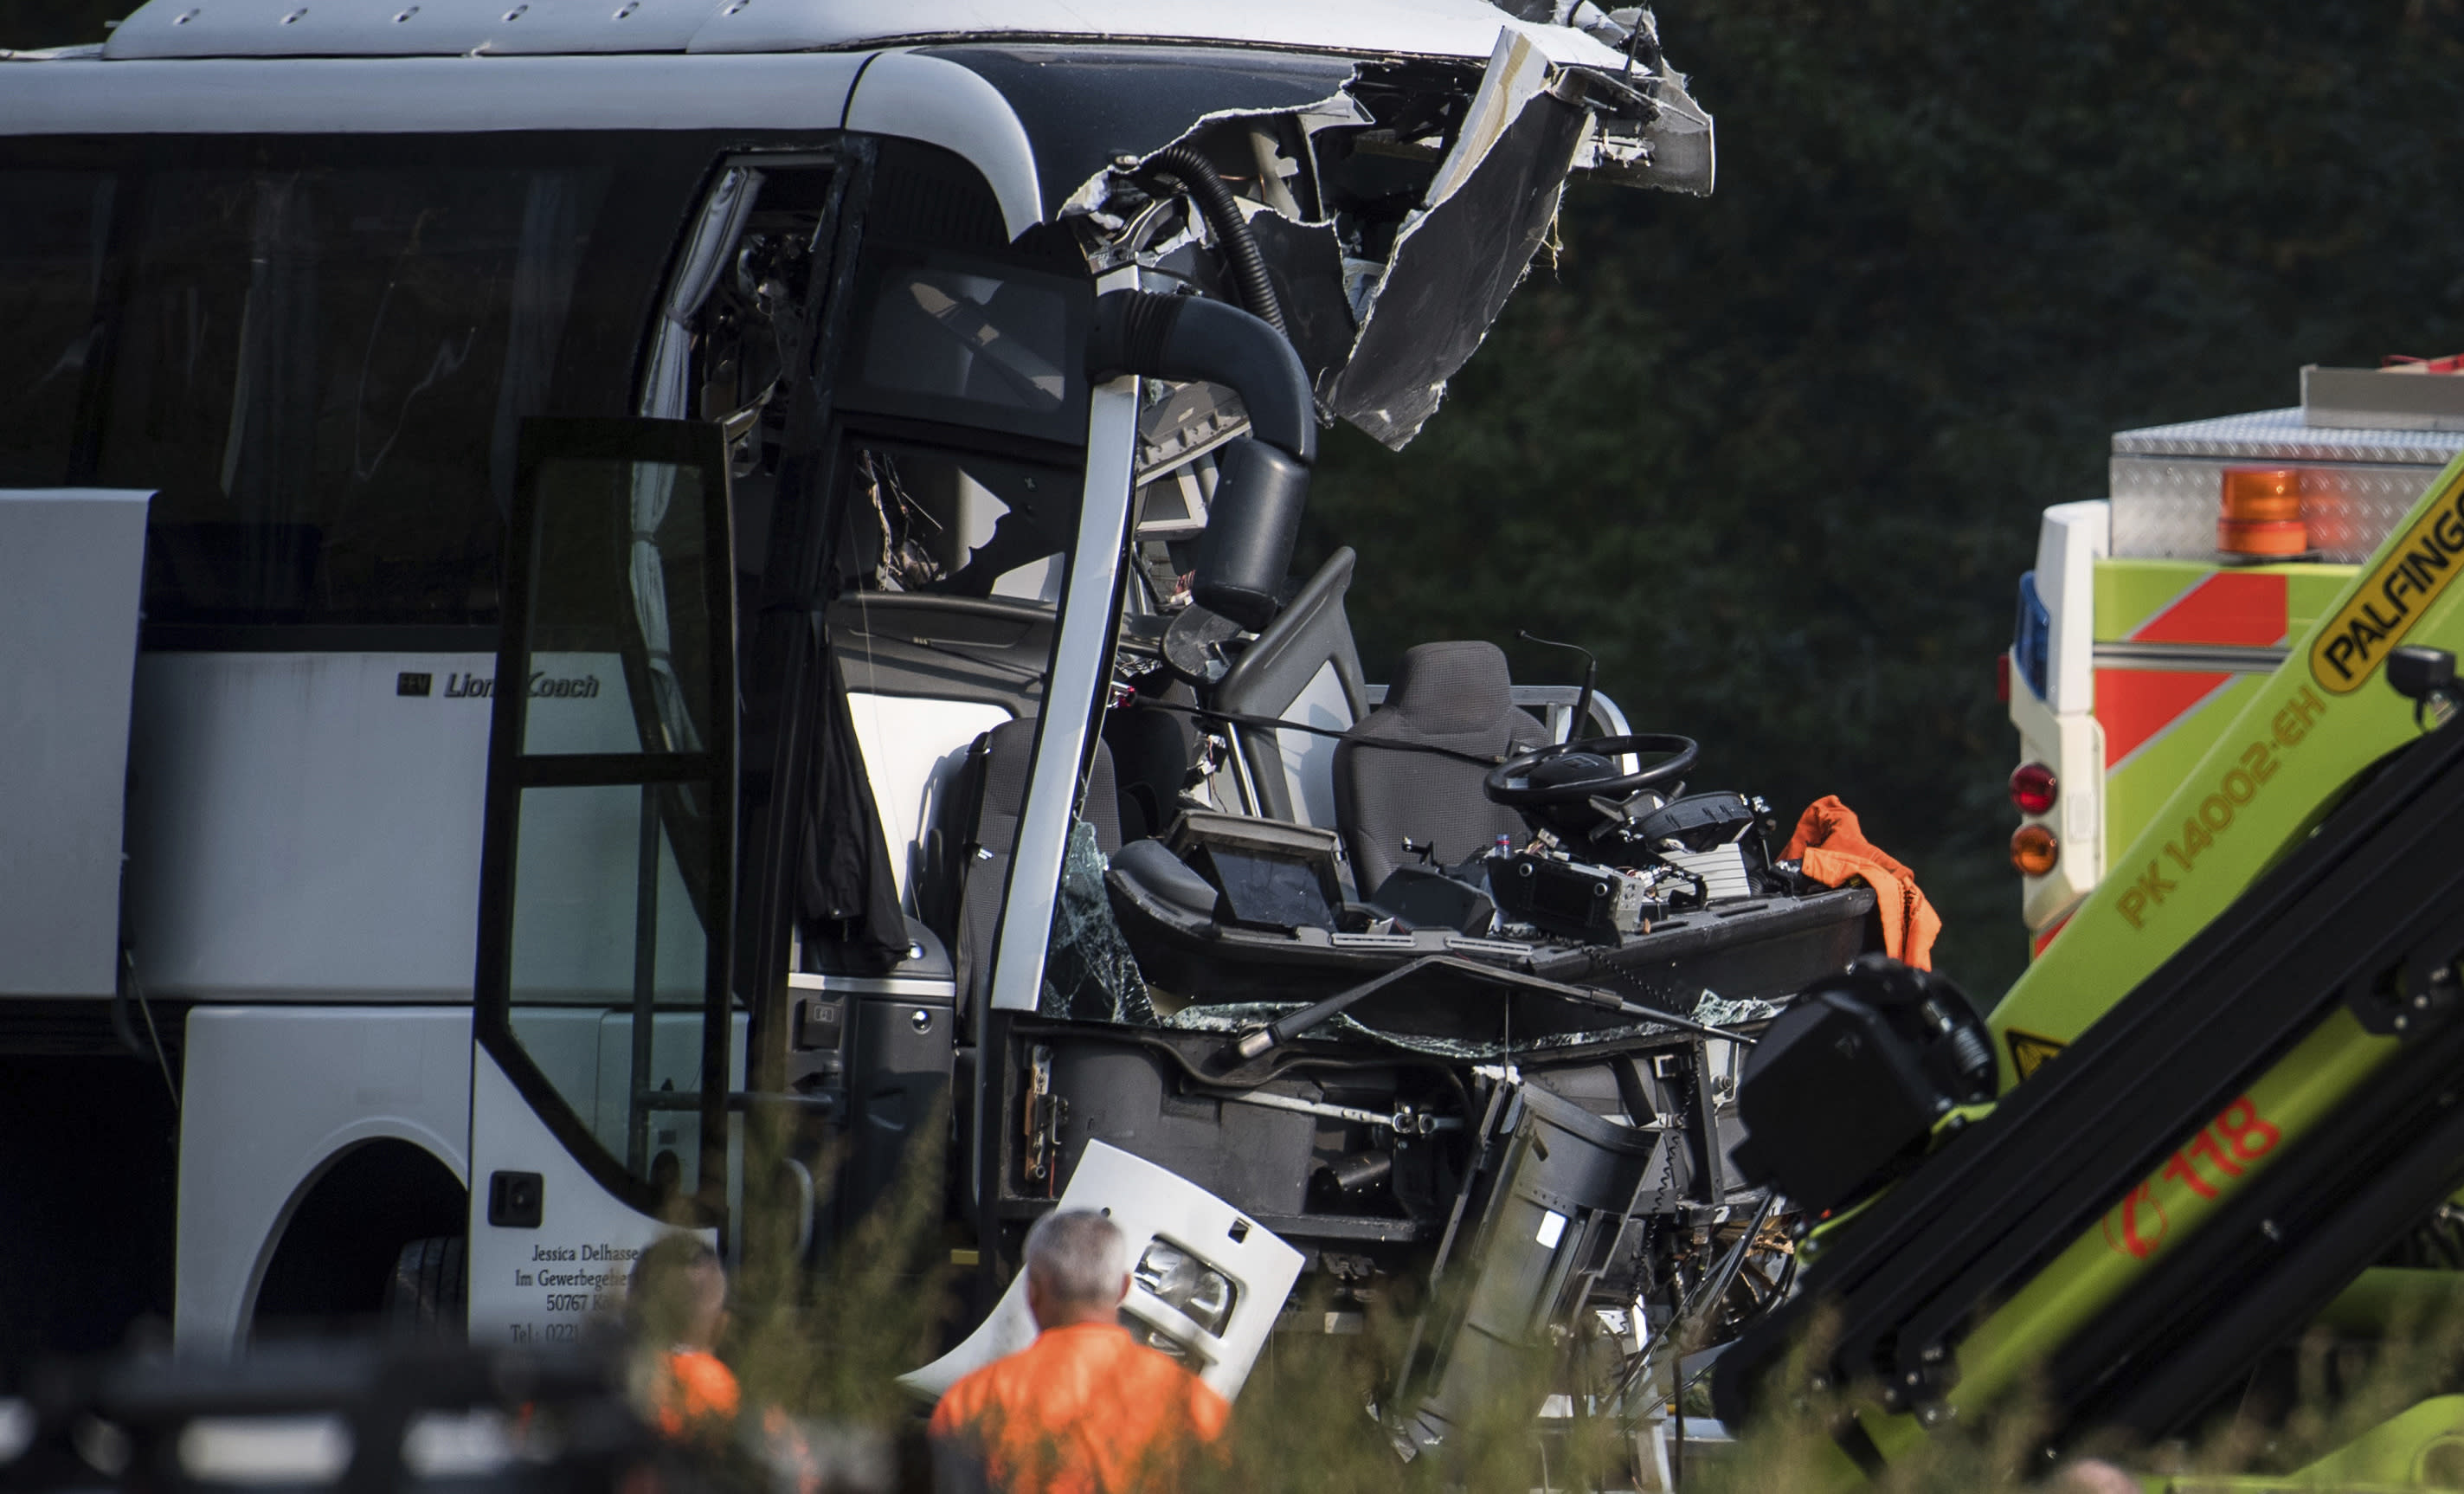 The accident site of a bus that crashed into signal post on the highway A2 in Sigirino, canton of Ticino, Switzerland, Sunday, Oct. 14, 2018. The A2 highway between Rivera and Lugano-North in is closed to the south. Several people were injured in the accident. (Gabriele Putzu, Ti-Press/Keystone via AP)